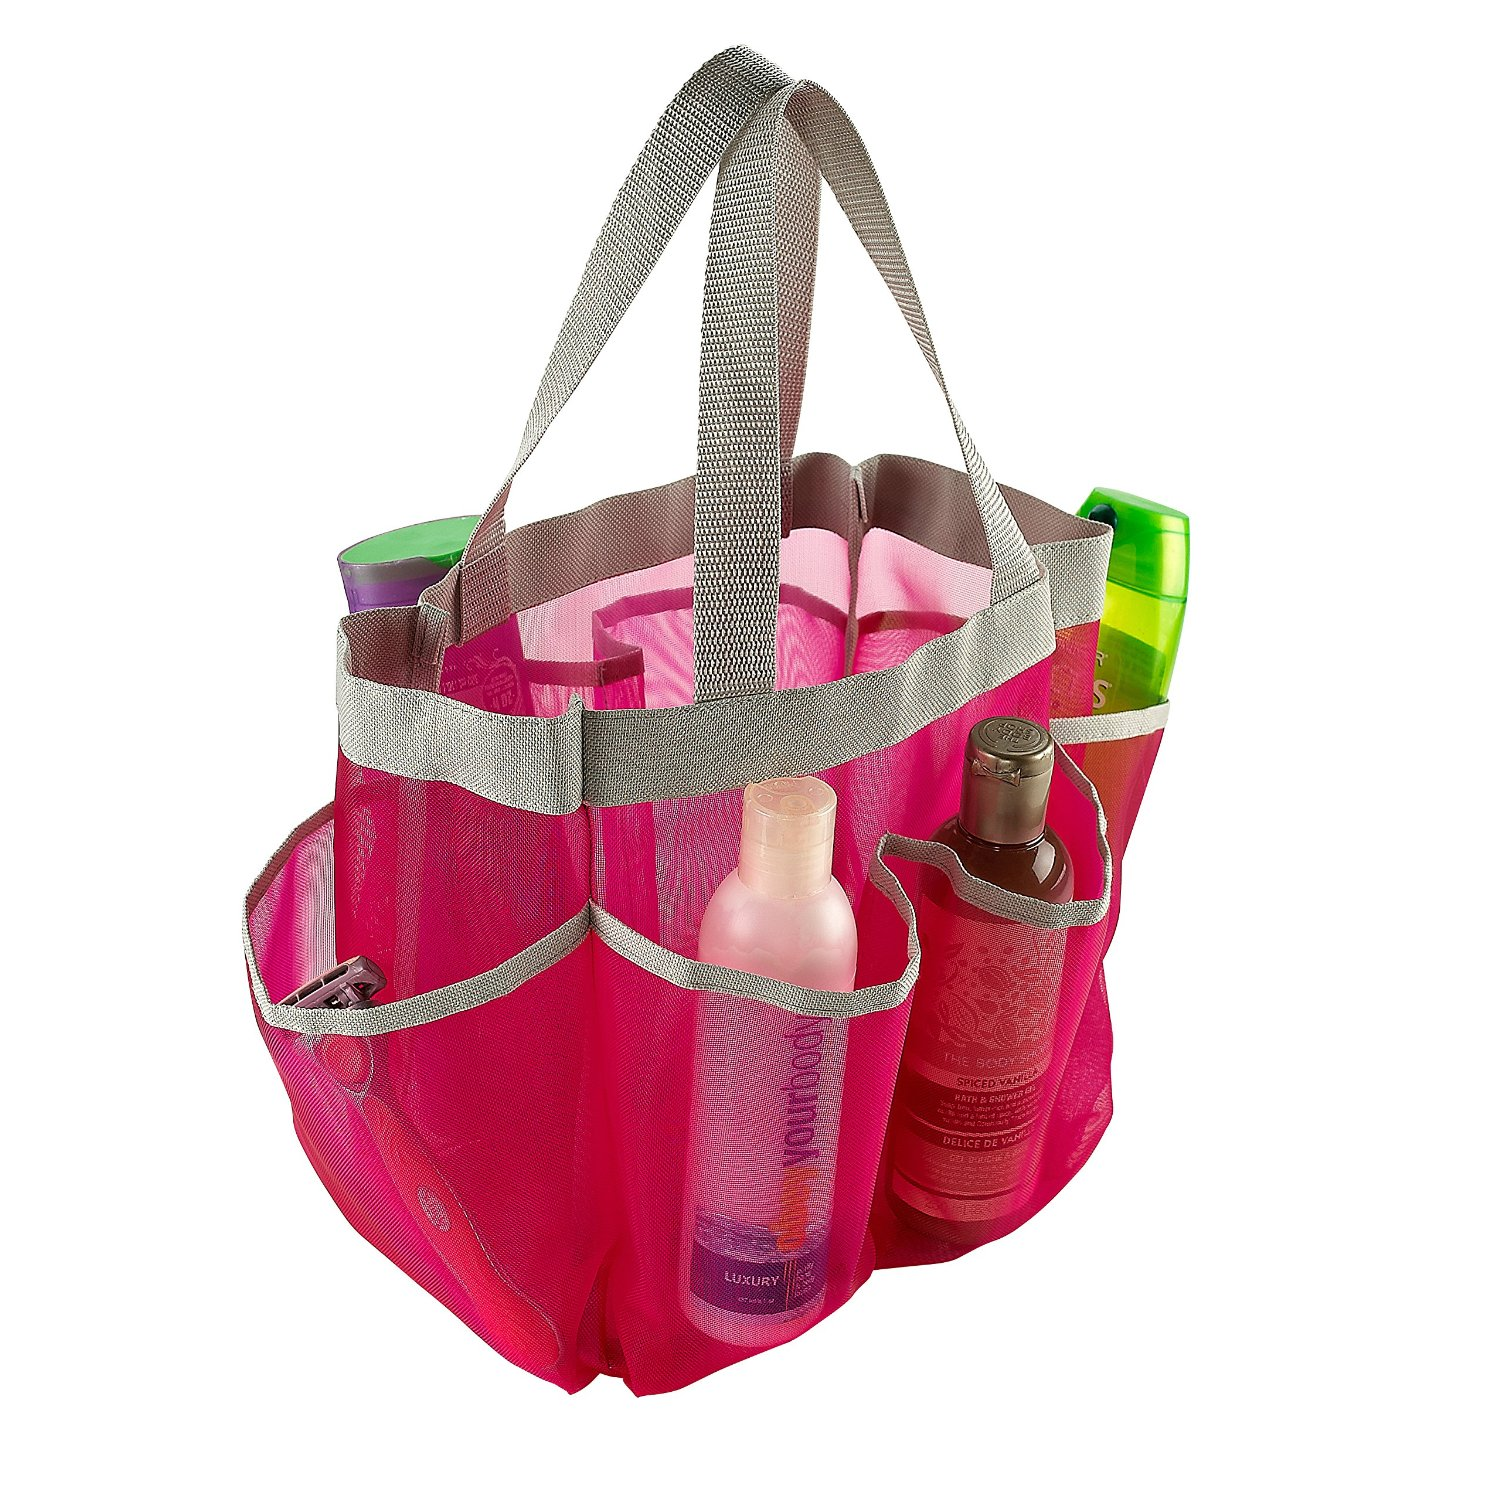 7 Pocket Shower Caddy Tote, Pink by